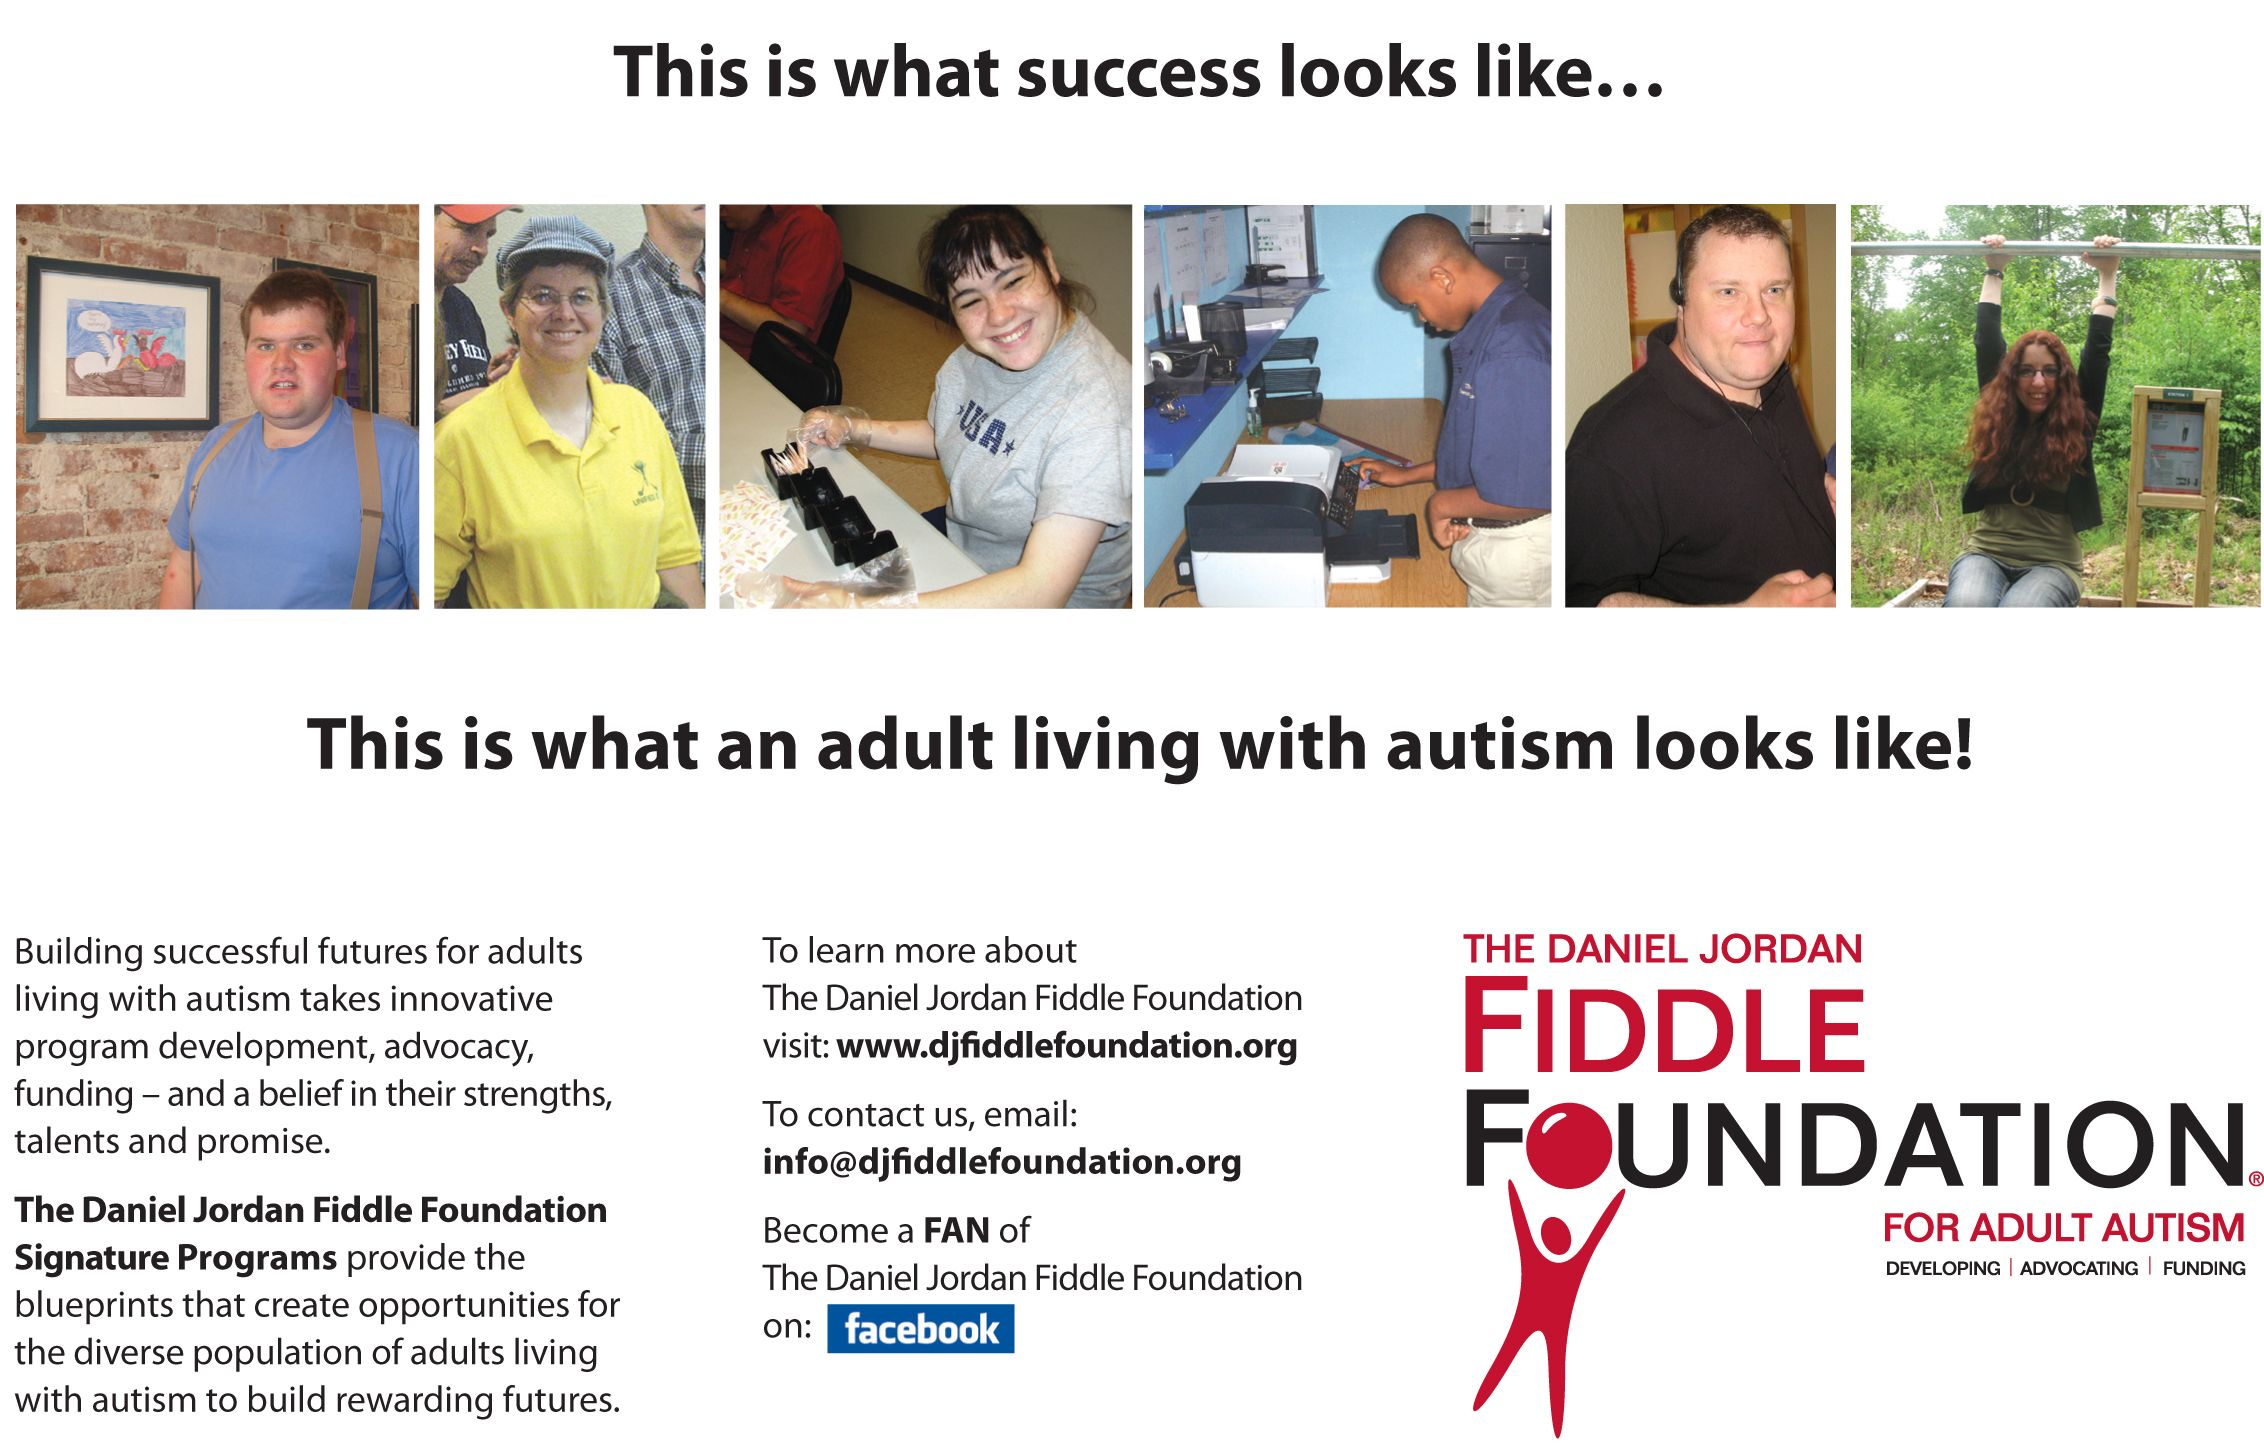 The Daniel Jordan Fiddle Foundation A National Autism